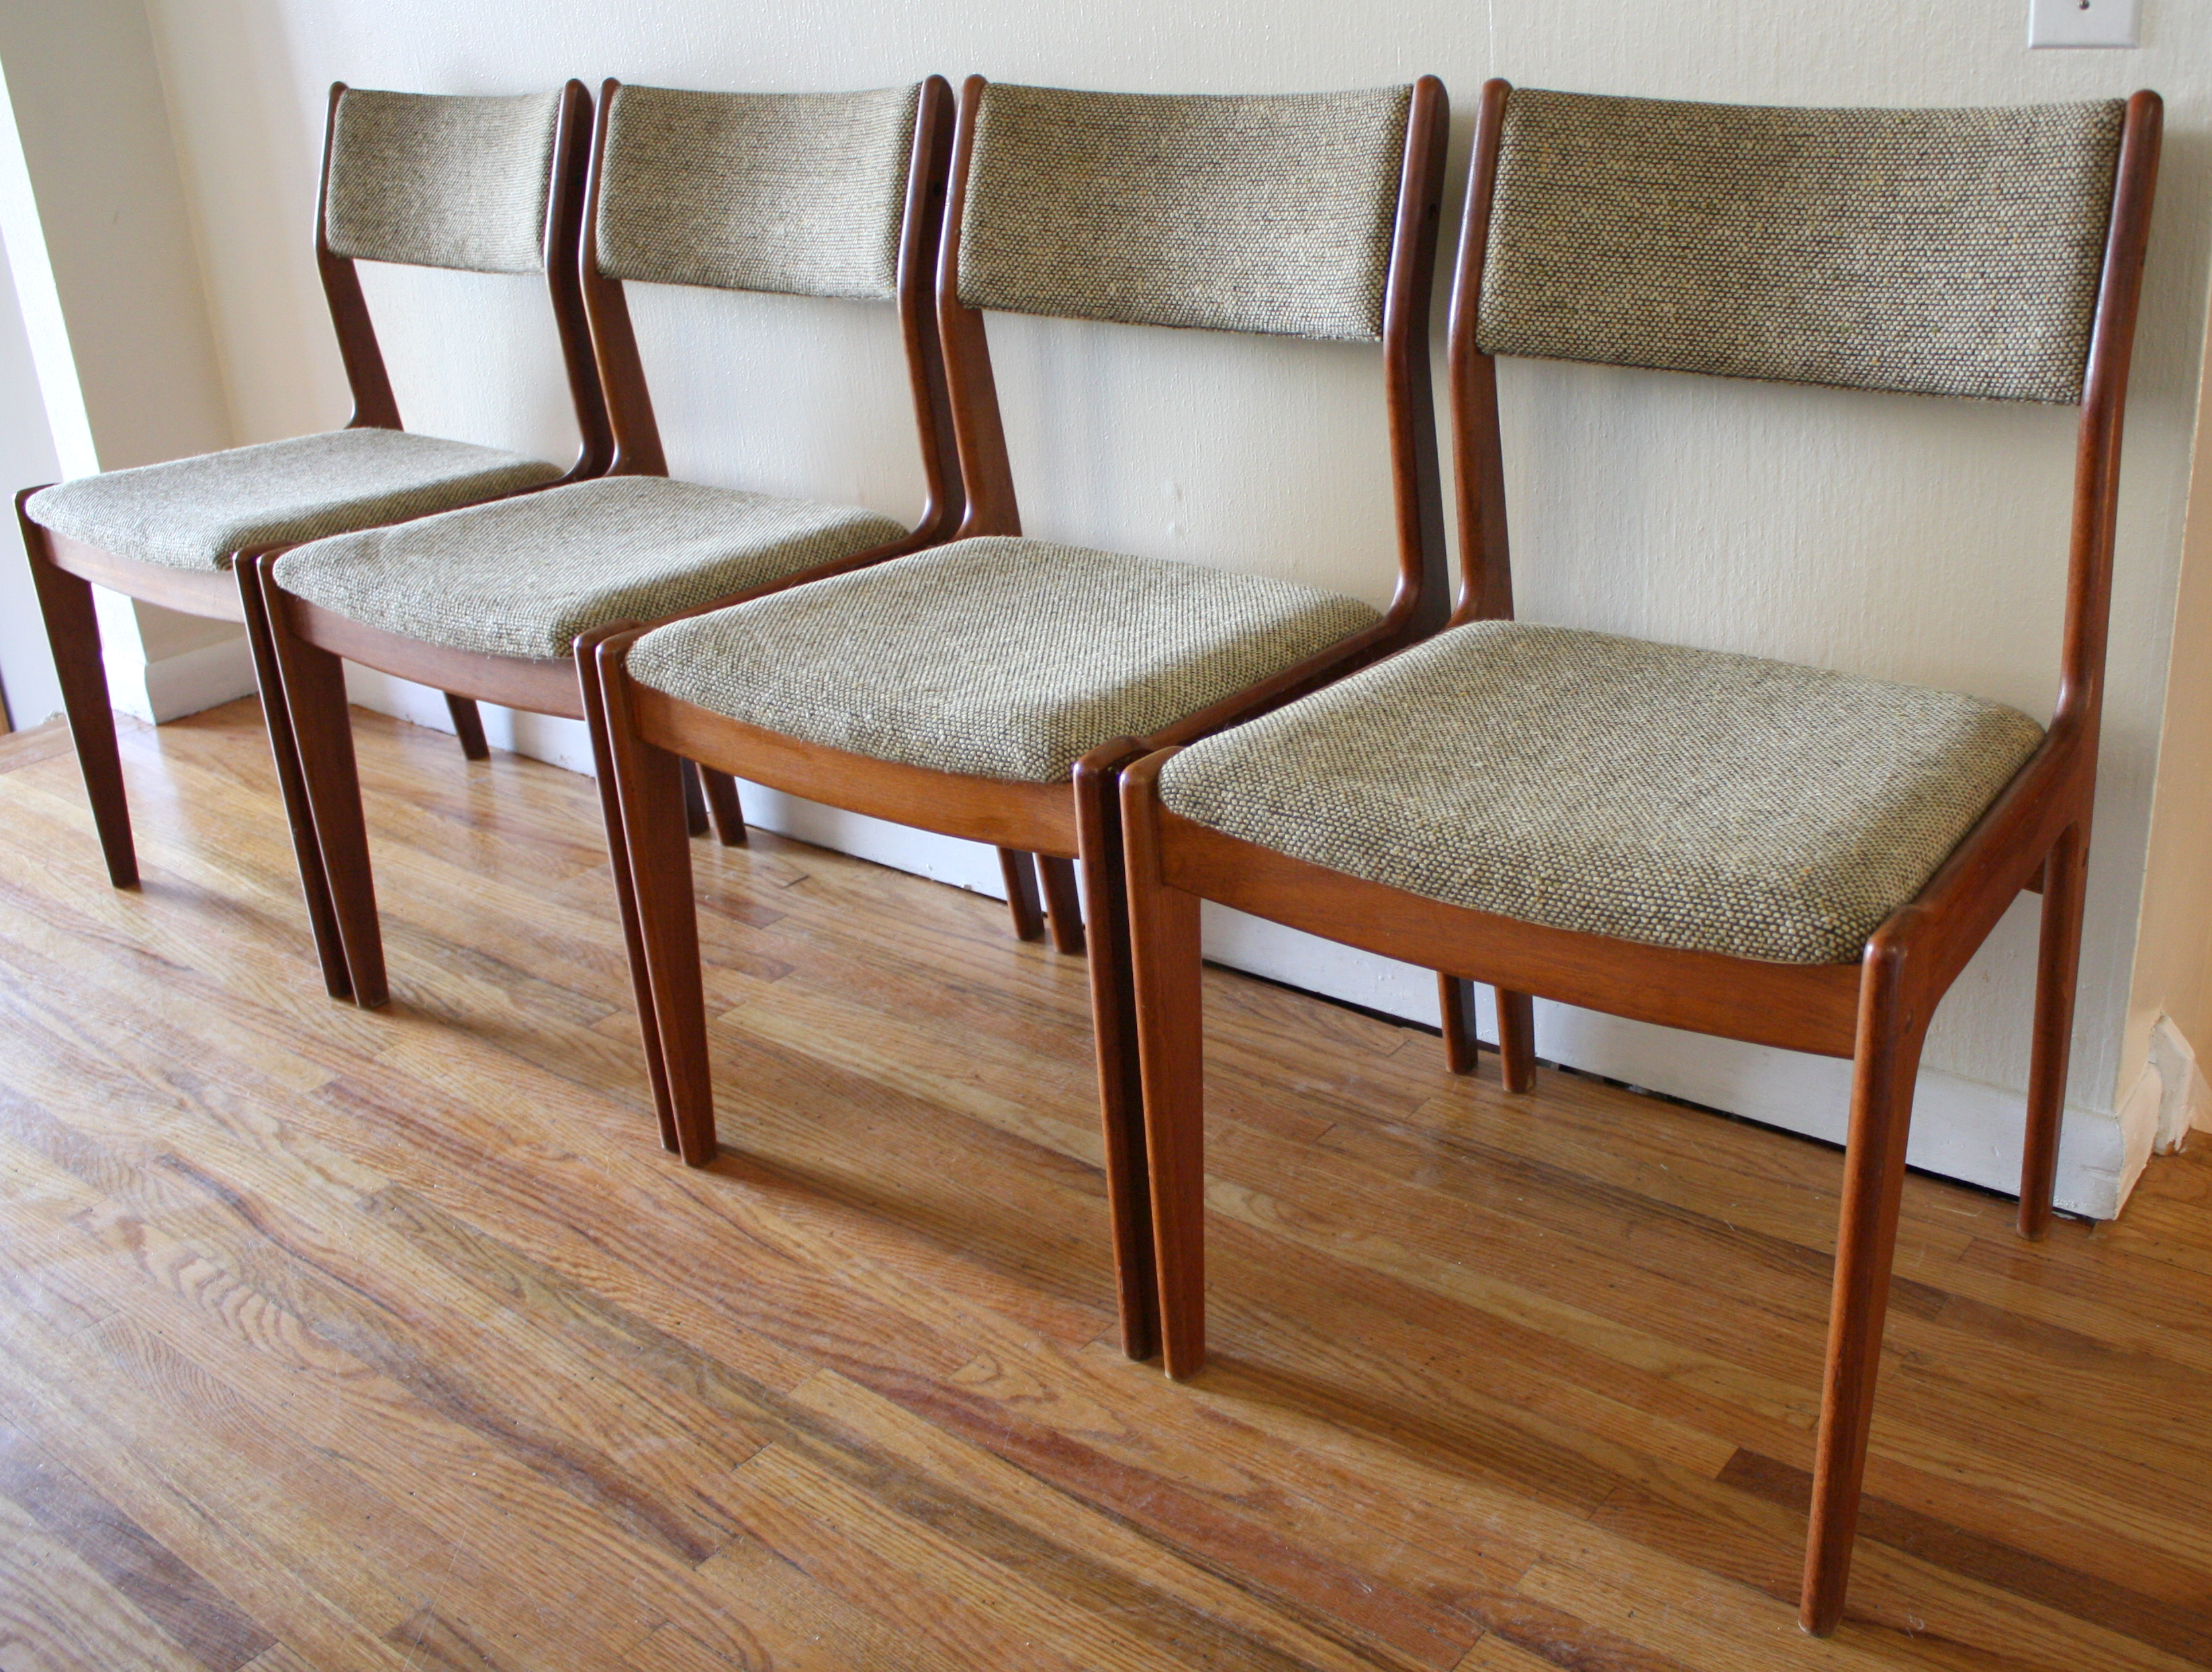 Set Of 4 Mid Century Modern Danish Dining Chairs Picked